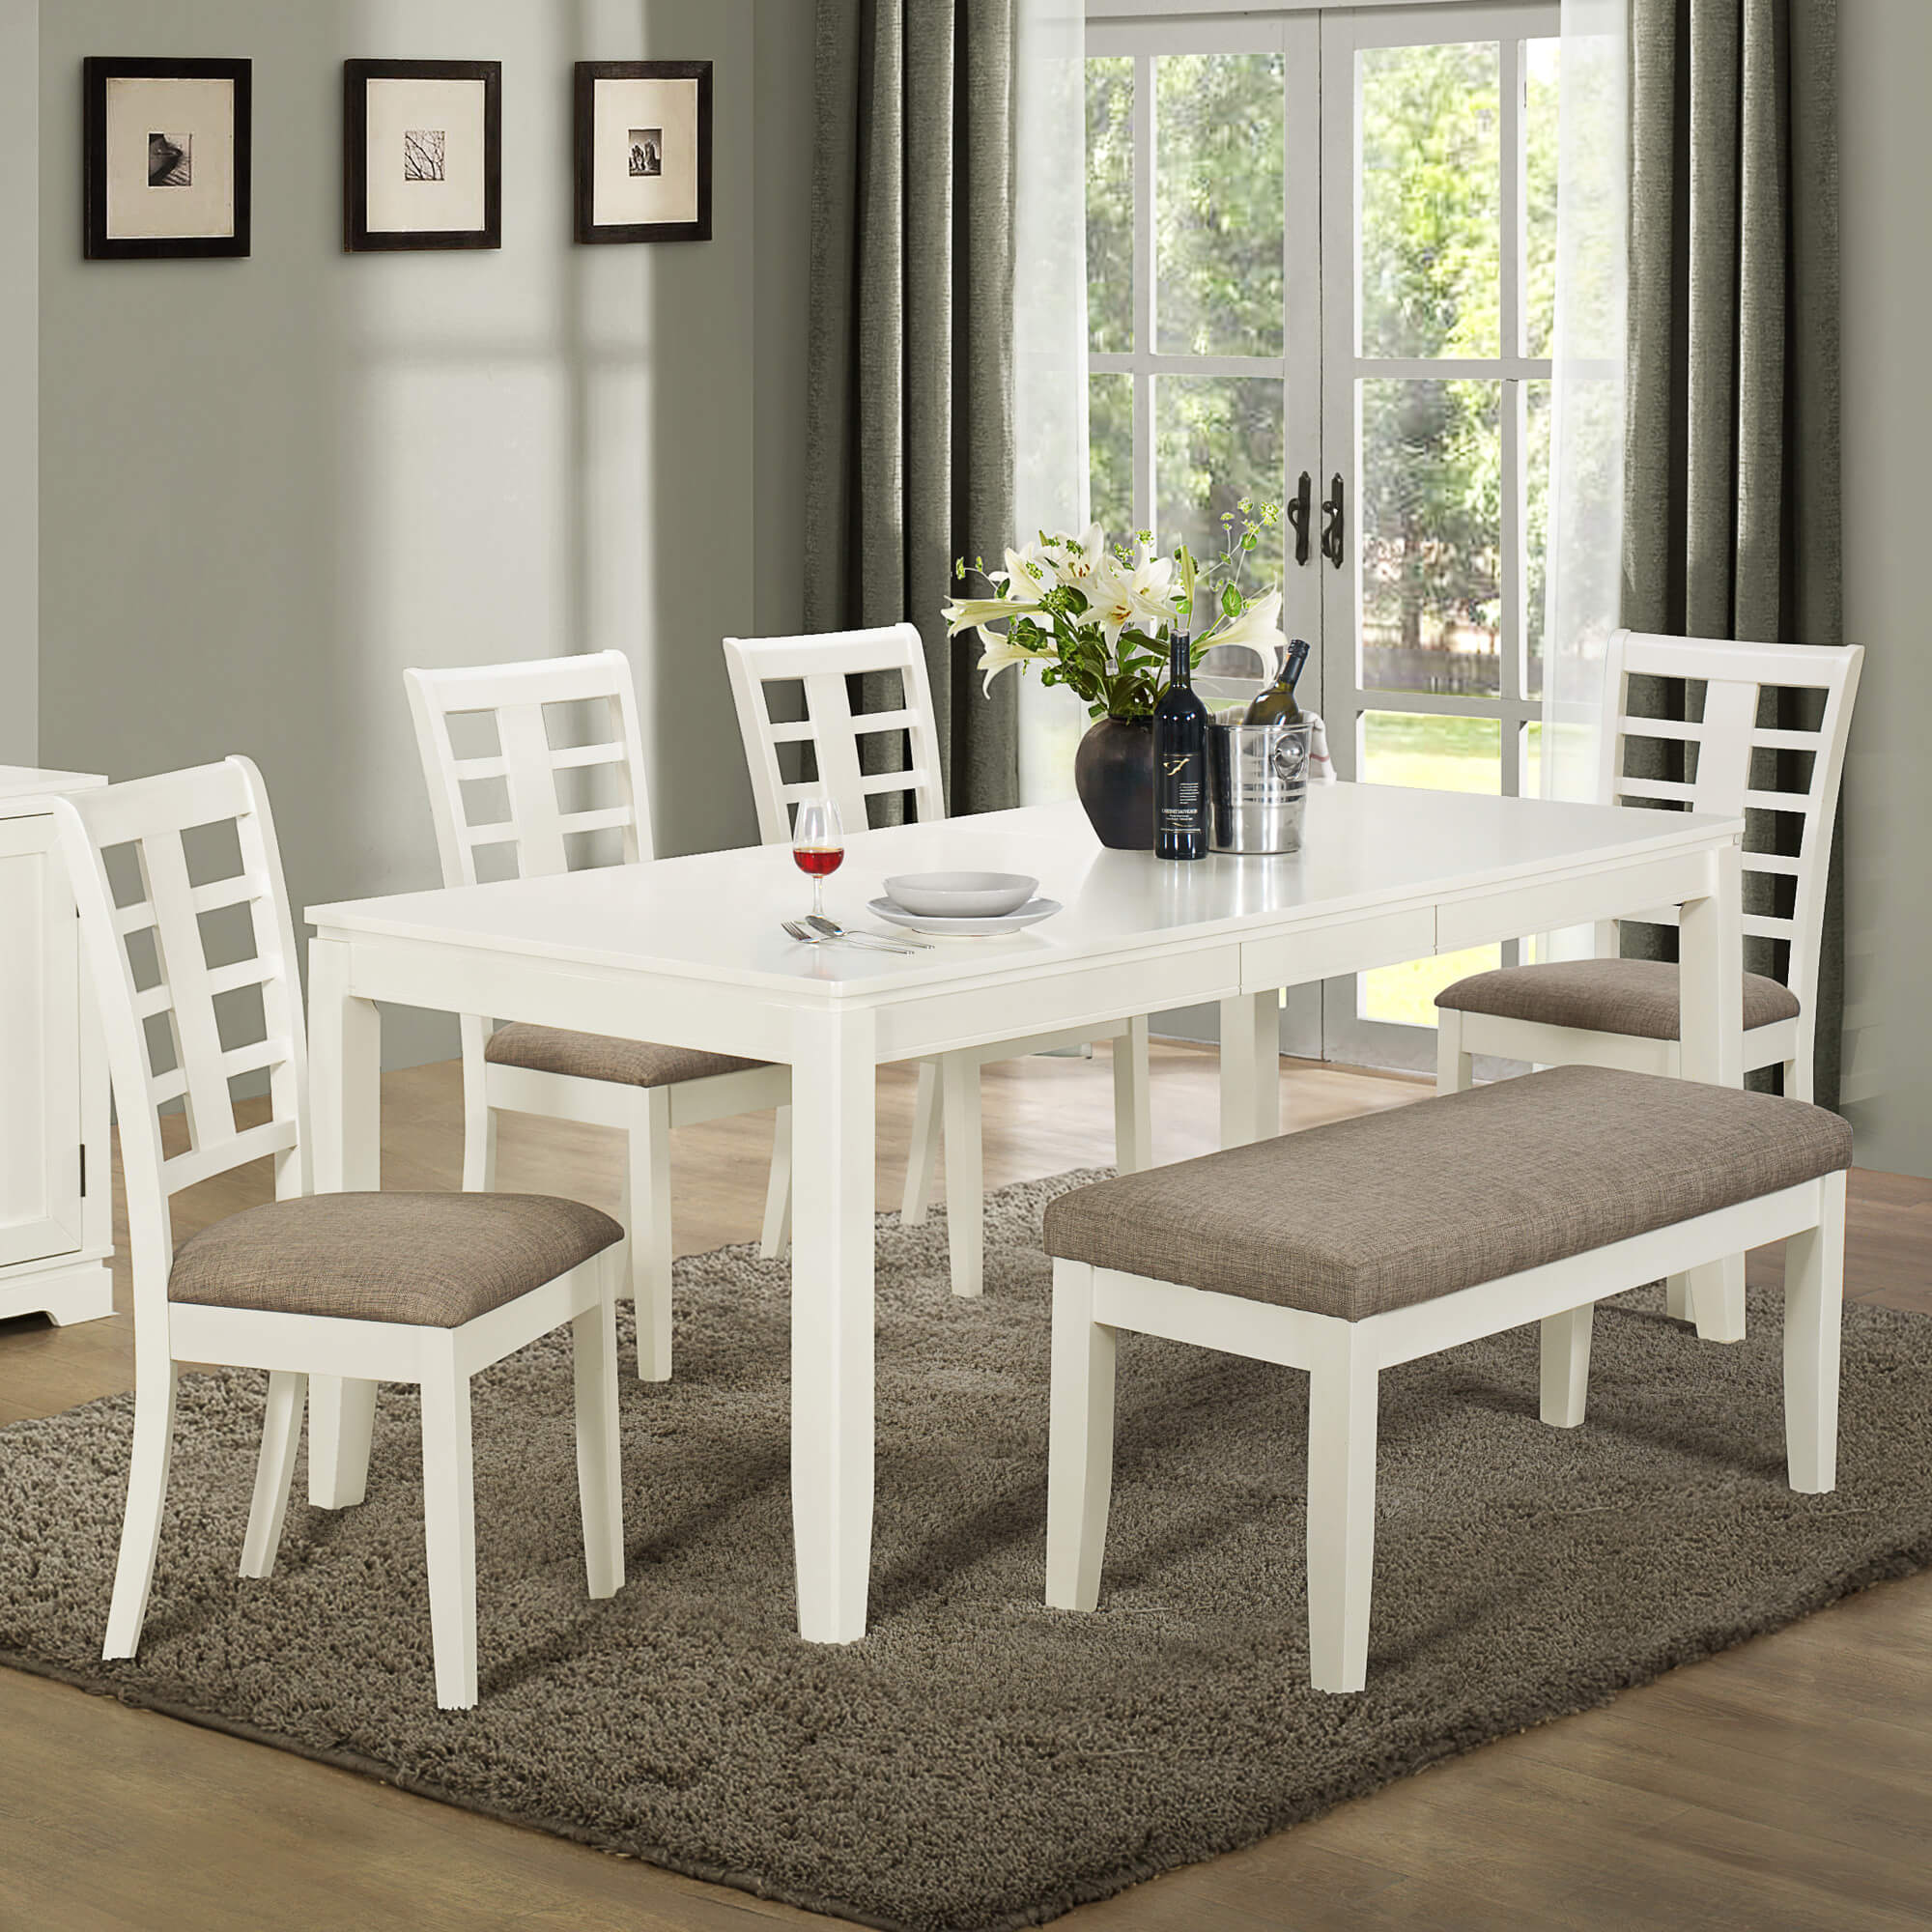 Solid Wood Dining Room Tables And Chairs Alongside Beige Dining Chairs And Wooden Round Dining Table Quotes